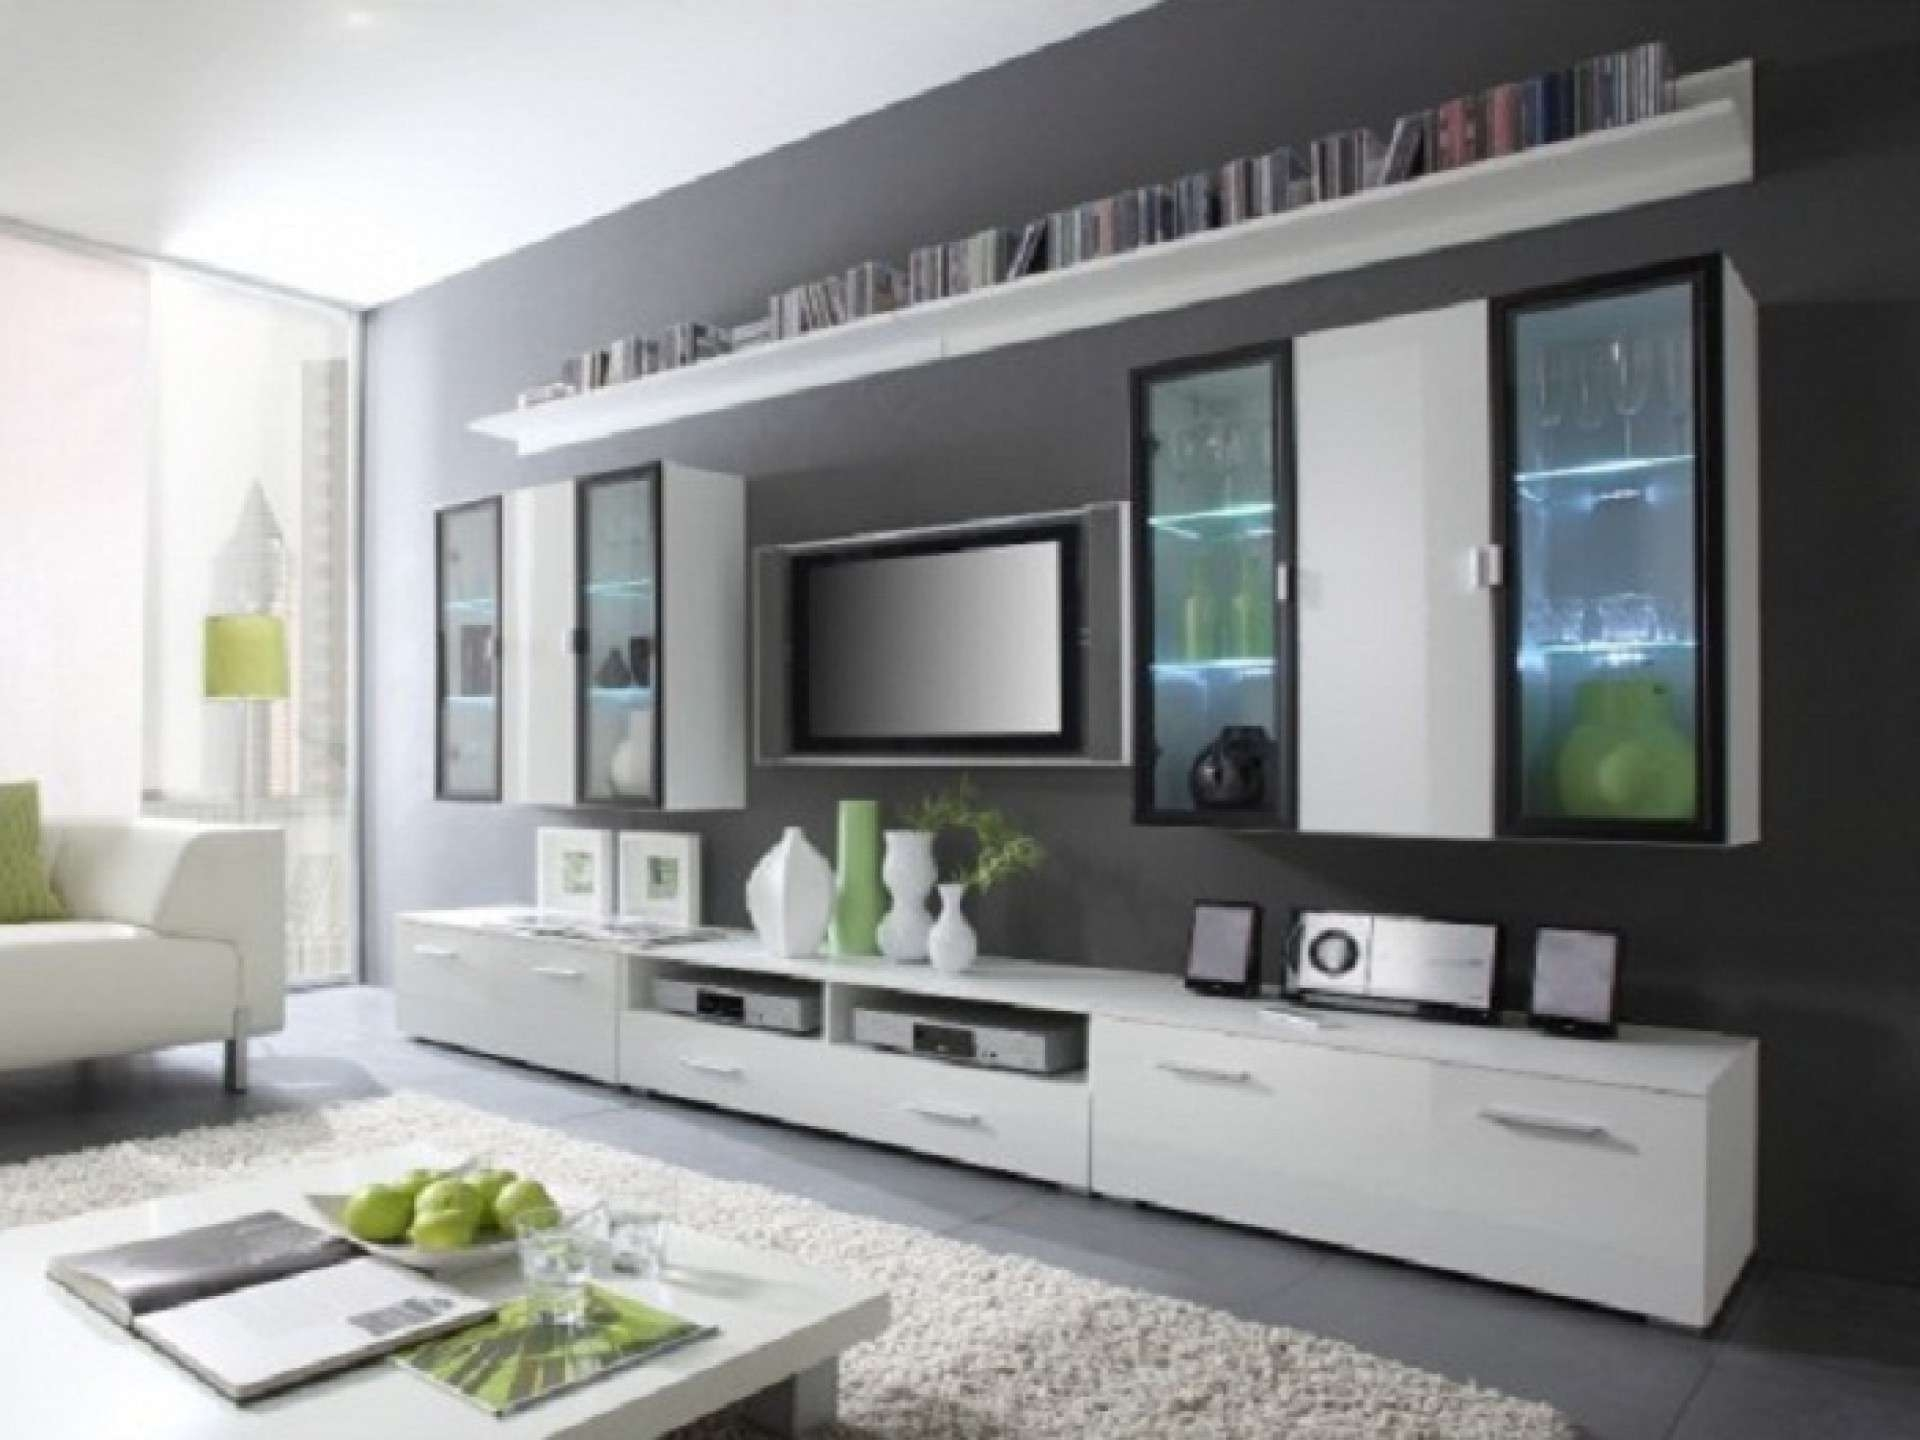 Wall Mounted Under Tv Cabinet – Home Design Ideas And Pictures With Under Tv Cabinets (View 12 of 20)